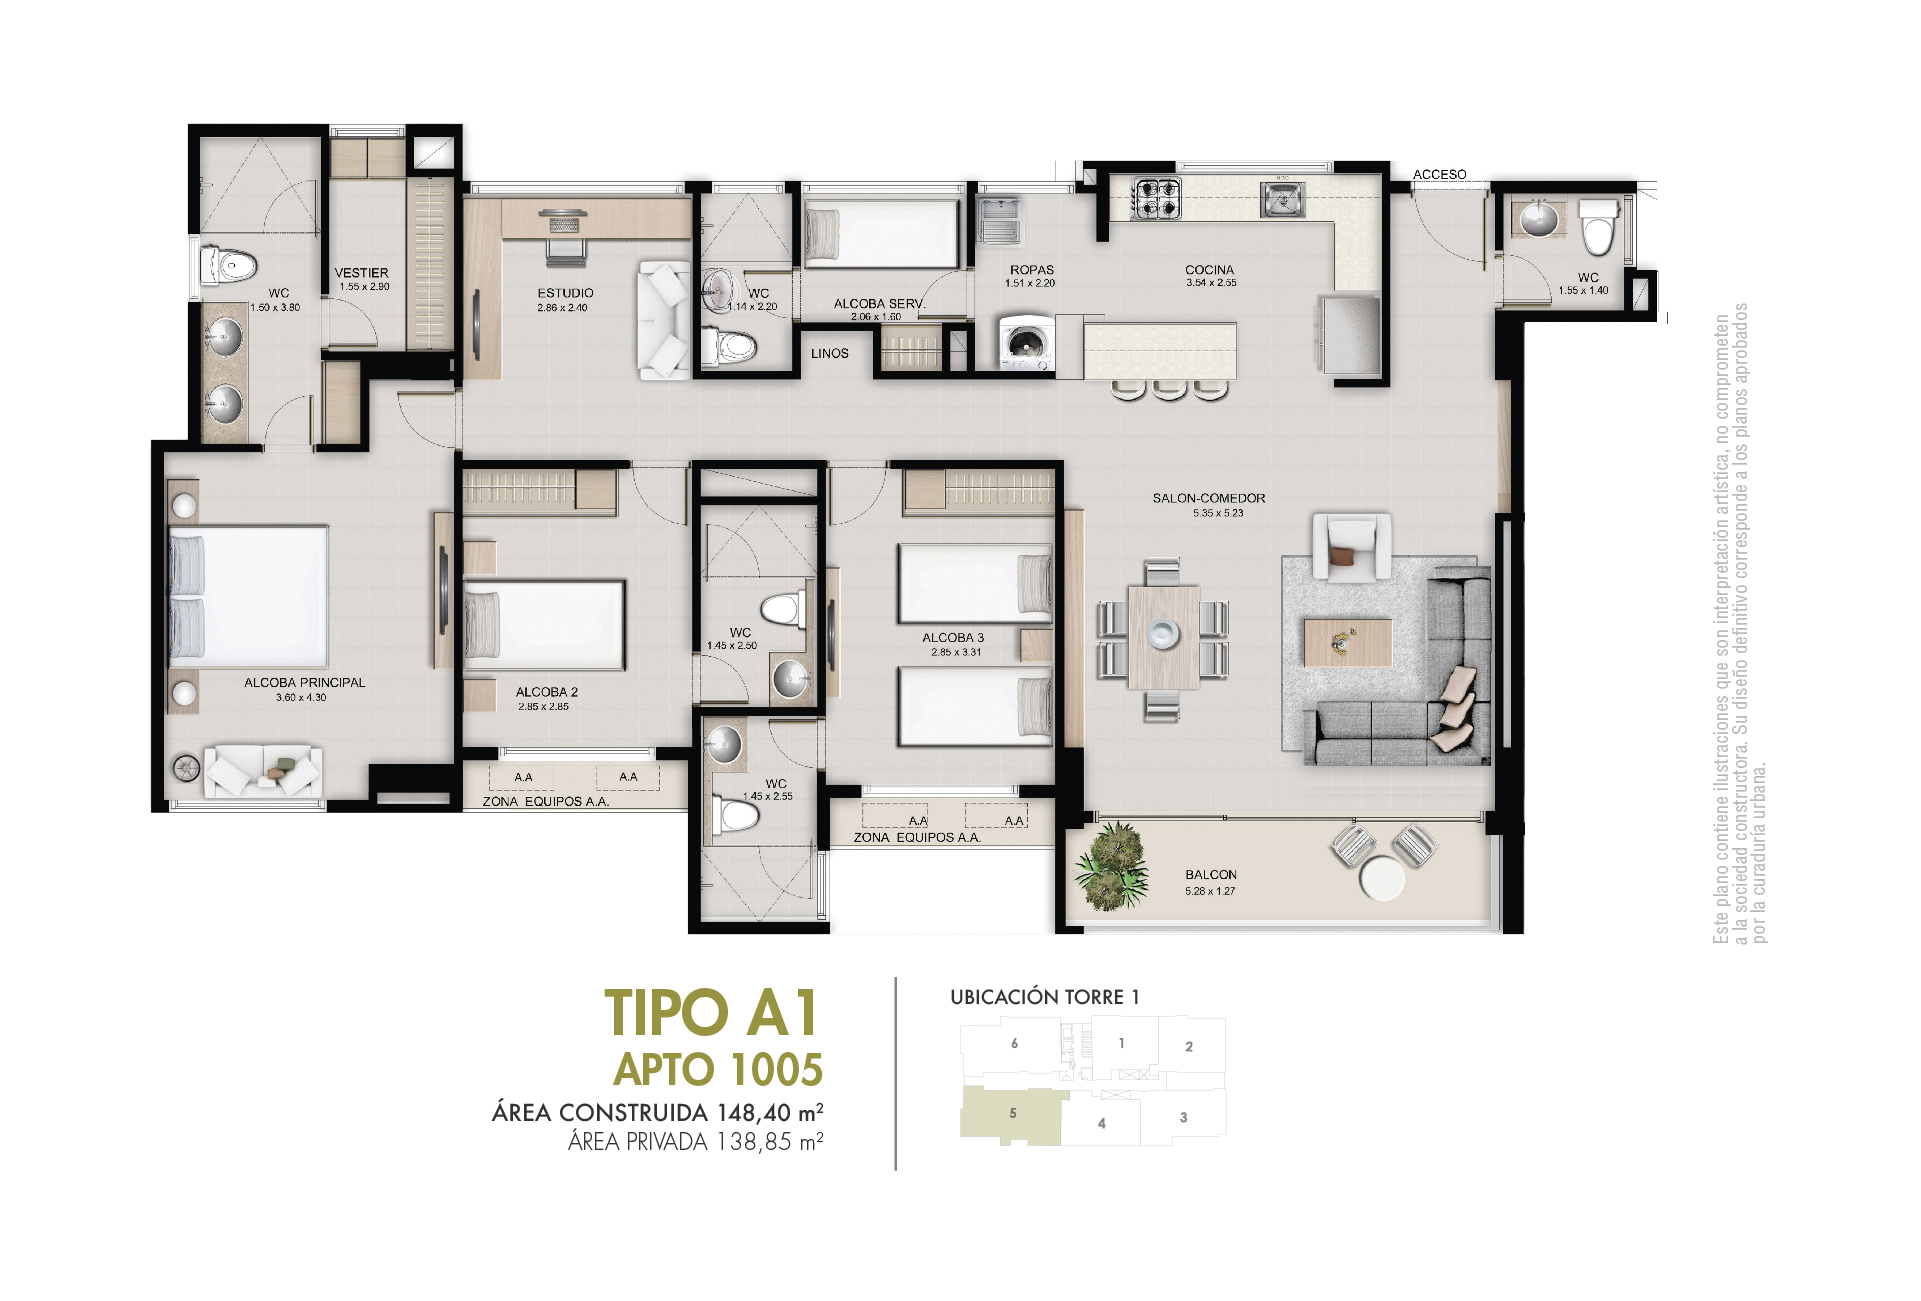 Tipo A 138,85 m2